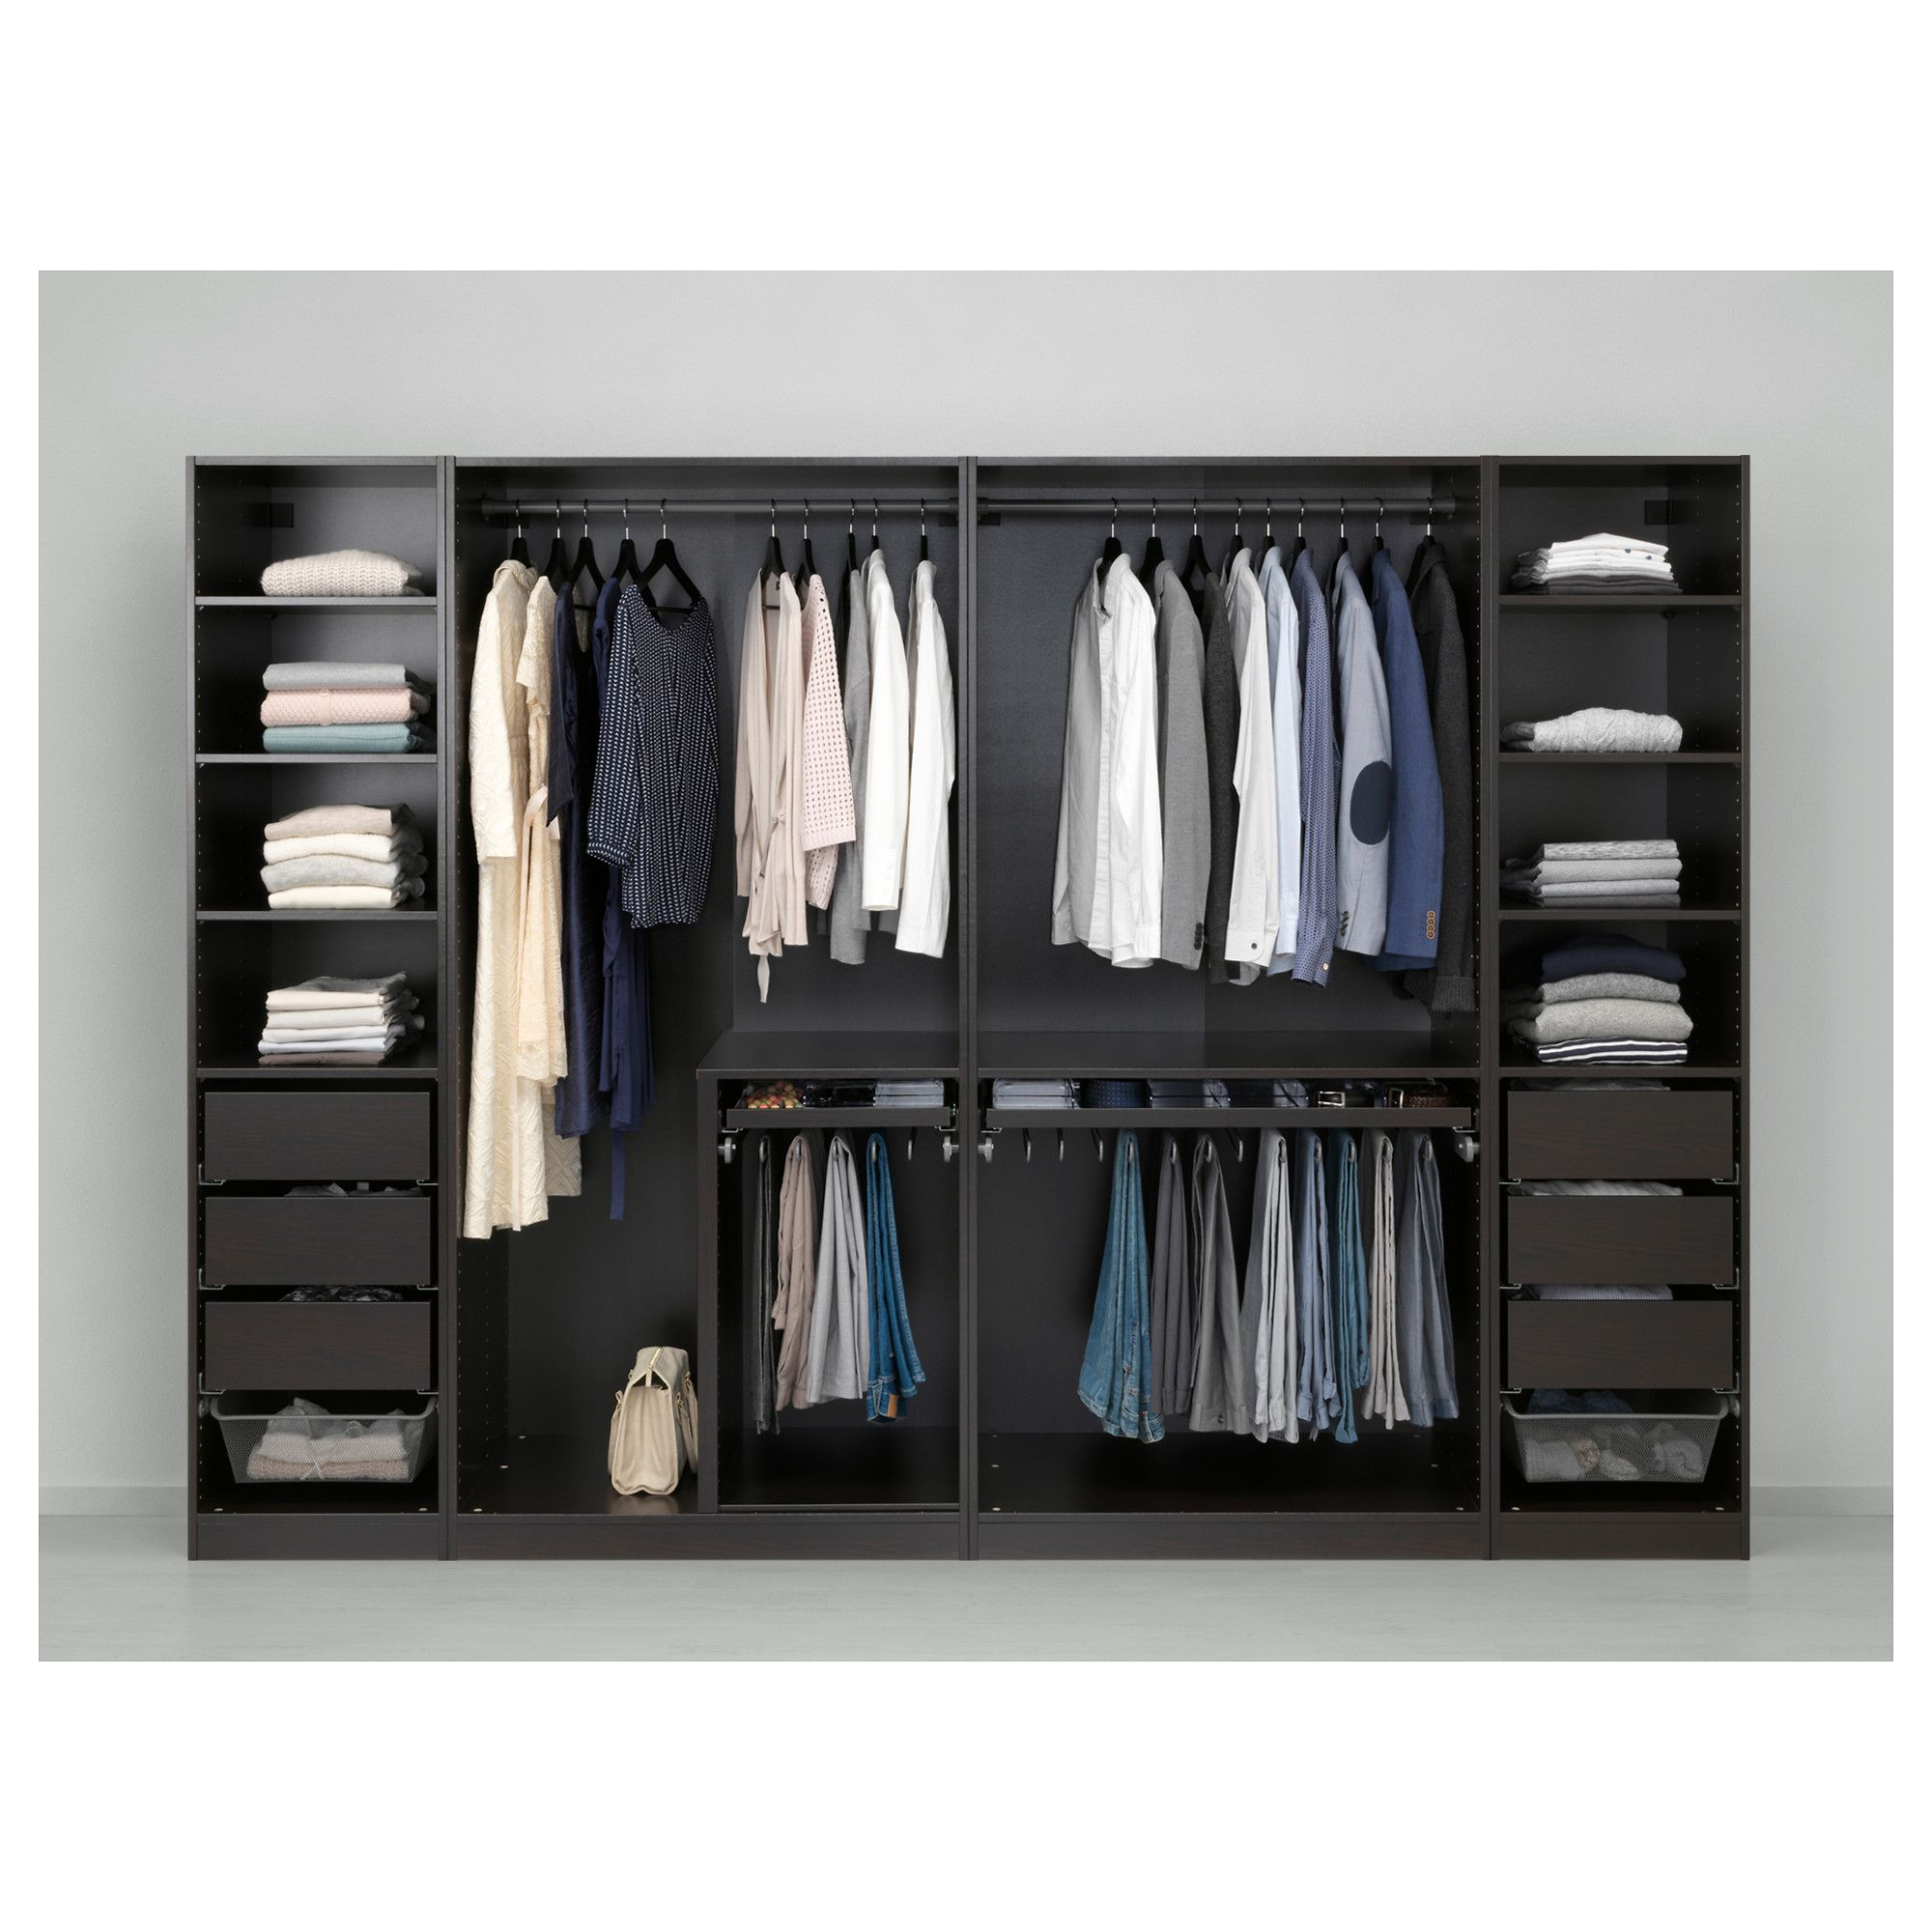 PAX Wardrobe Black Brown Undredal Undredal Glass In 2019